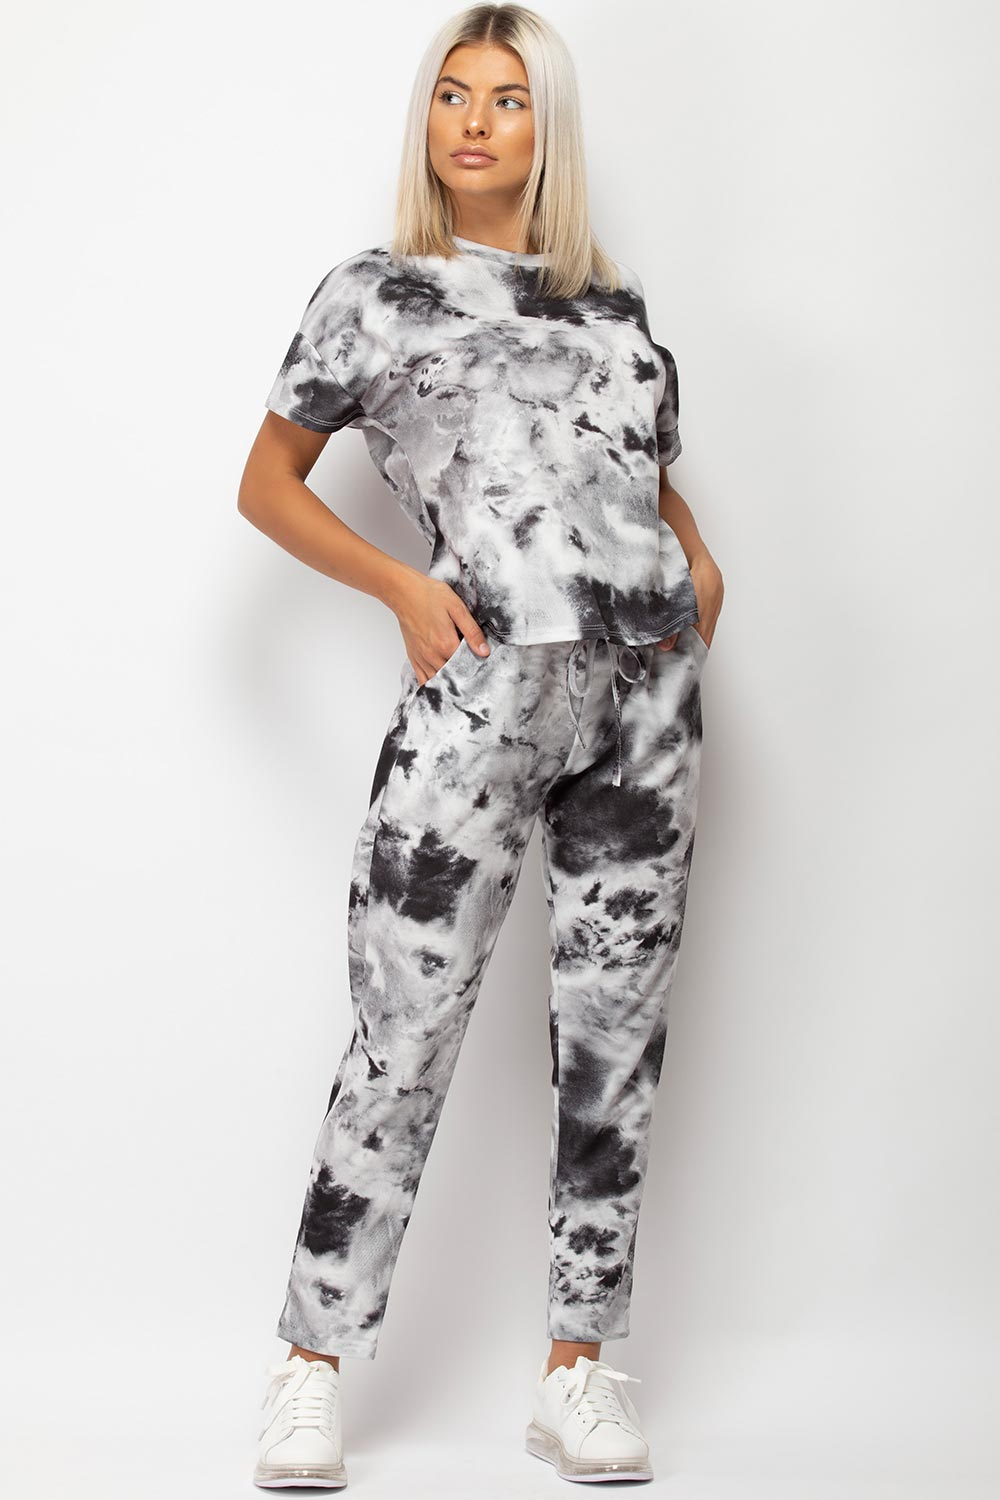 Tie Dye Loungewear Set Black And White